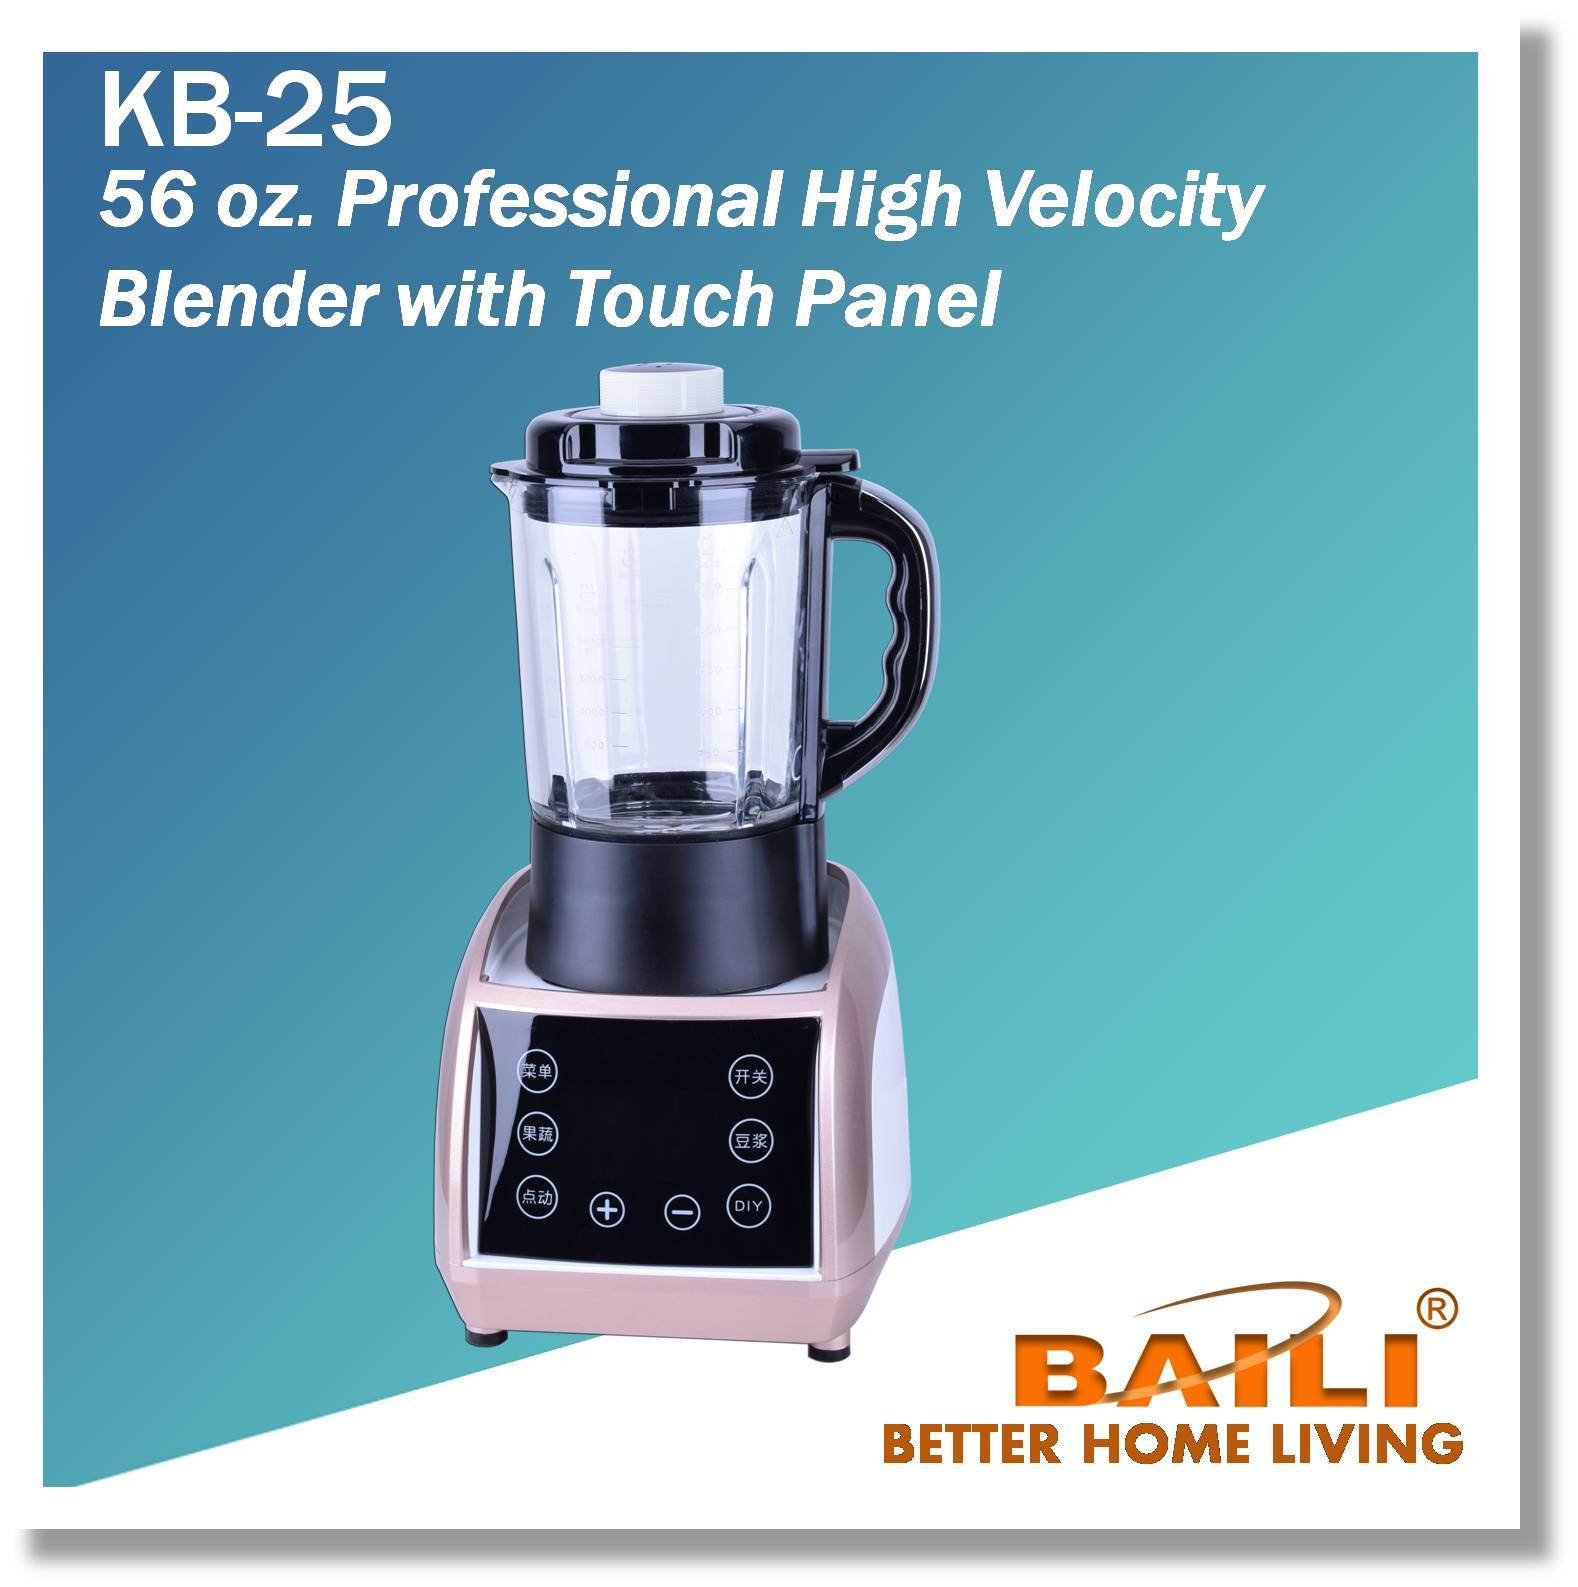 56 Oz. Professional High Velocity Blender with Touch Panel